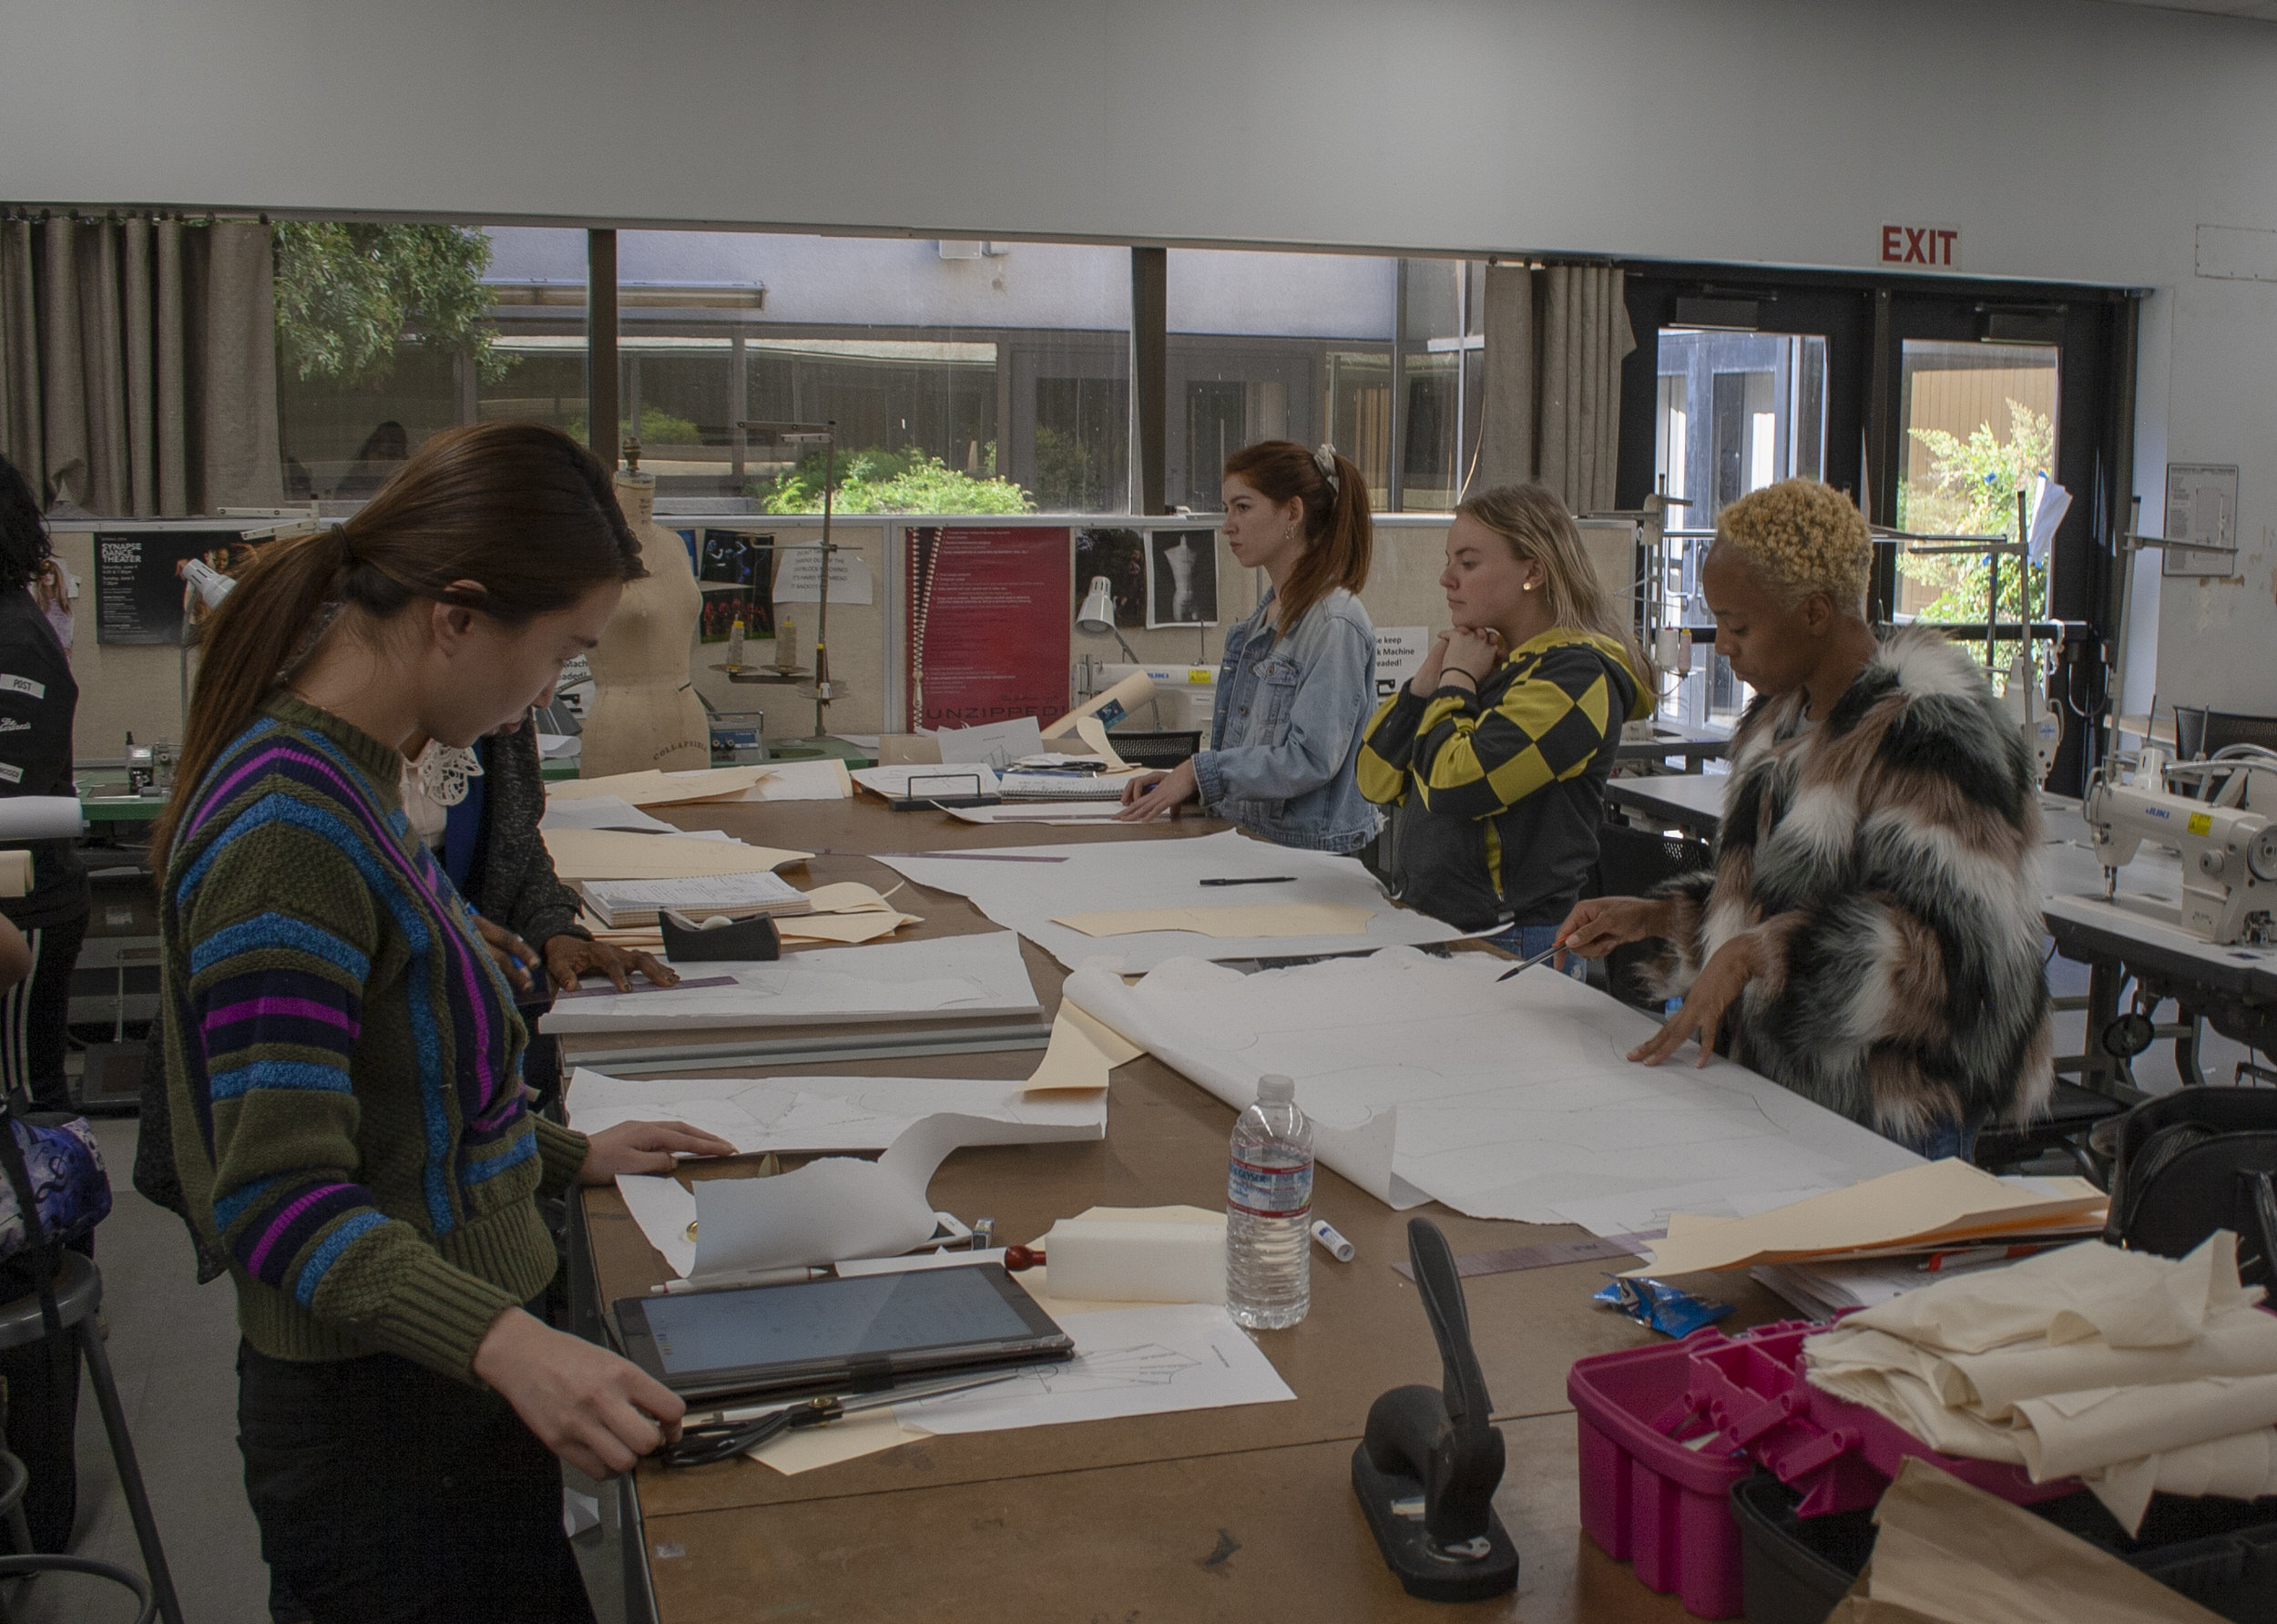 On Feburary 22, 2019 within the Fashion Department in Santa Monica College (SMC) where Porscha Woodard learns, and works on the basics of tracing. Professor Sofi Khachmanyan teaches the class Fashion 6A. Porscha starts re tracing on paper.